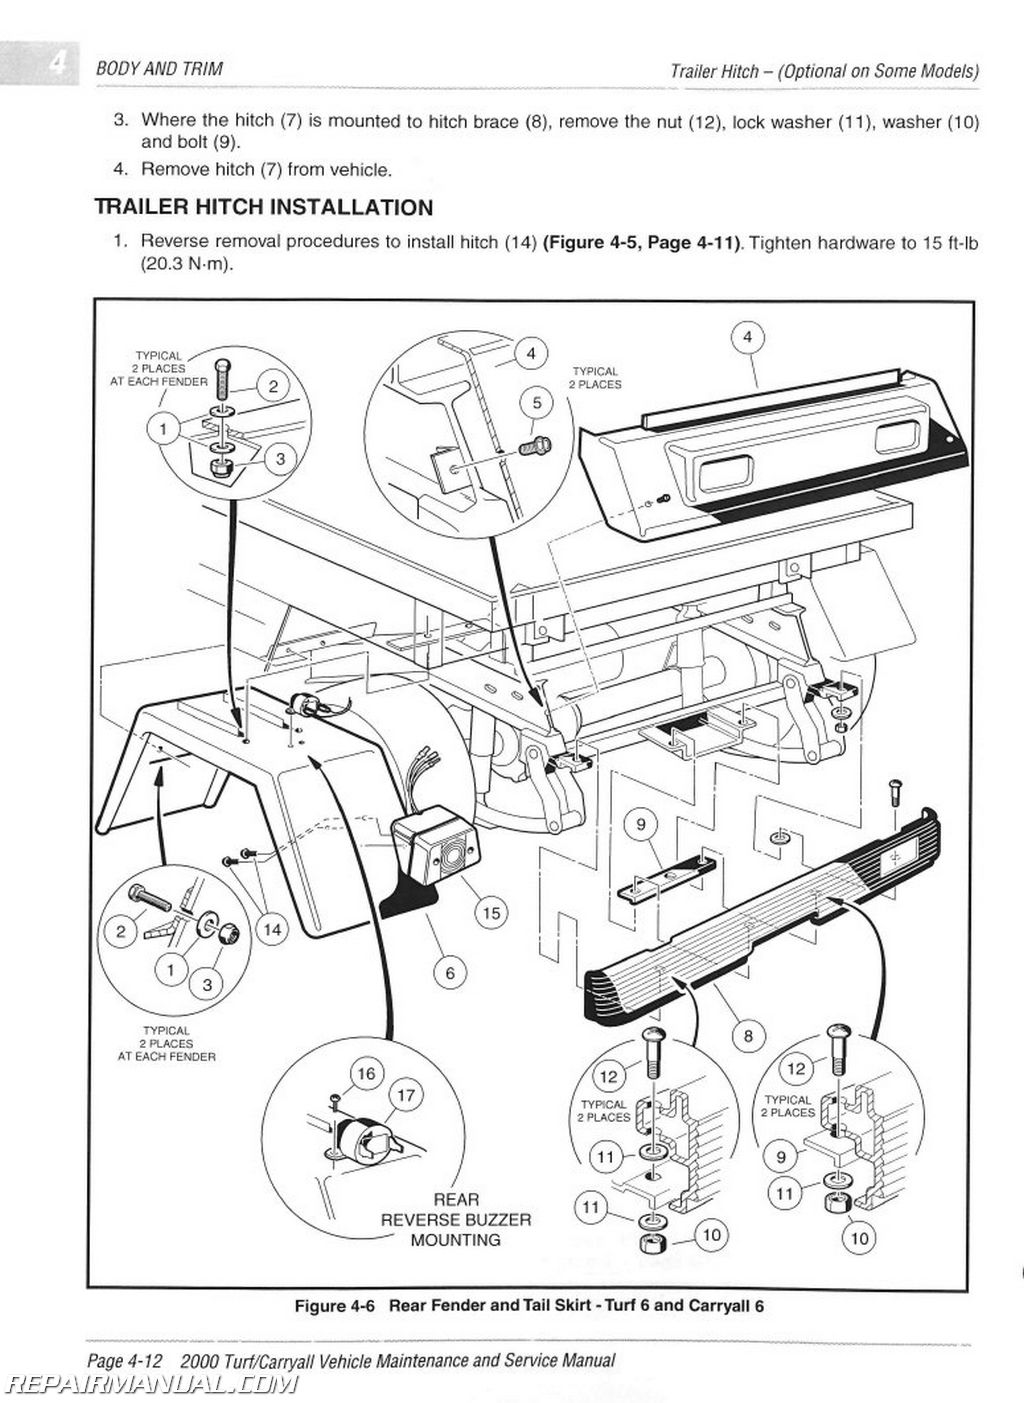 manual repair manual electrical wiring diagrams body